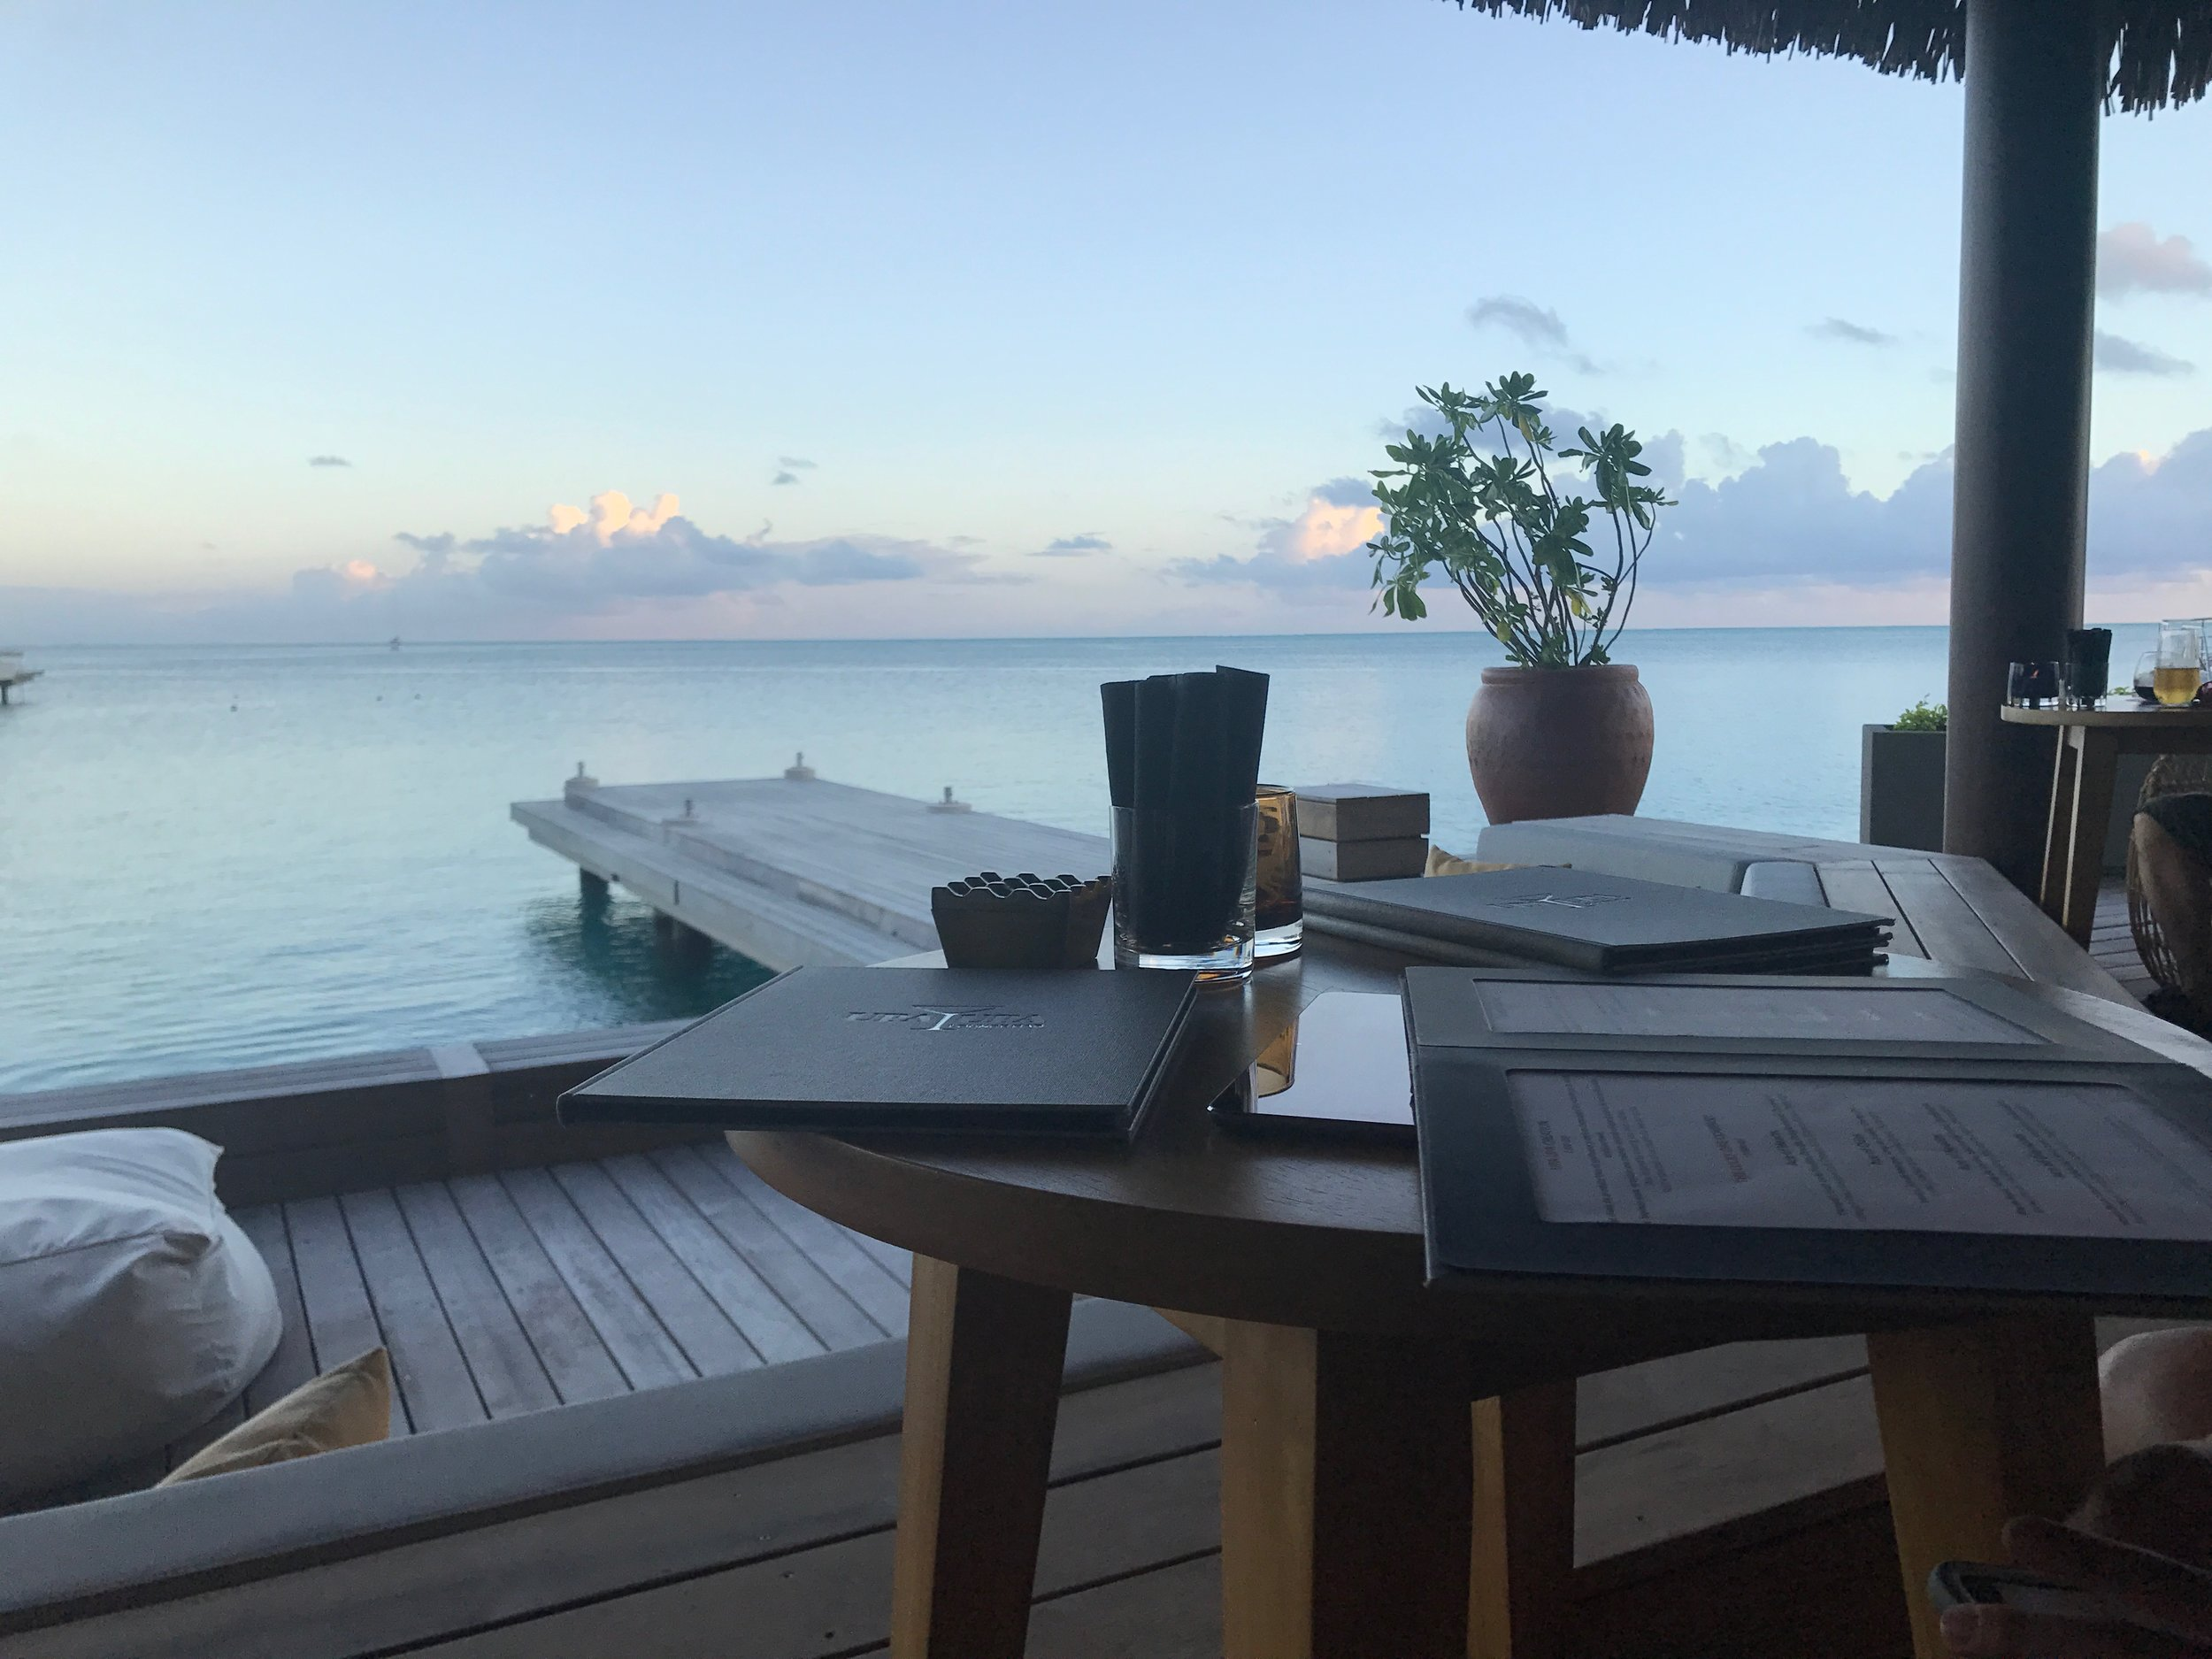 Modern zen bar/lounges where you can grab a mocktail, some lite bites while waiting for the sun to set, staring at the best view ever. @upaupaloung